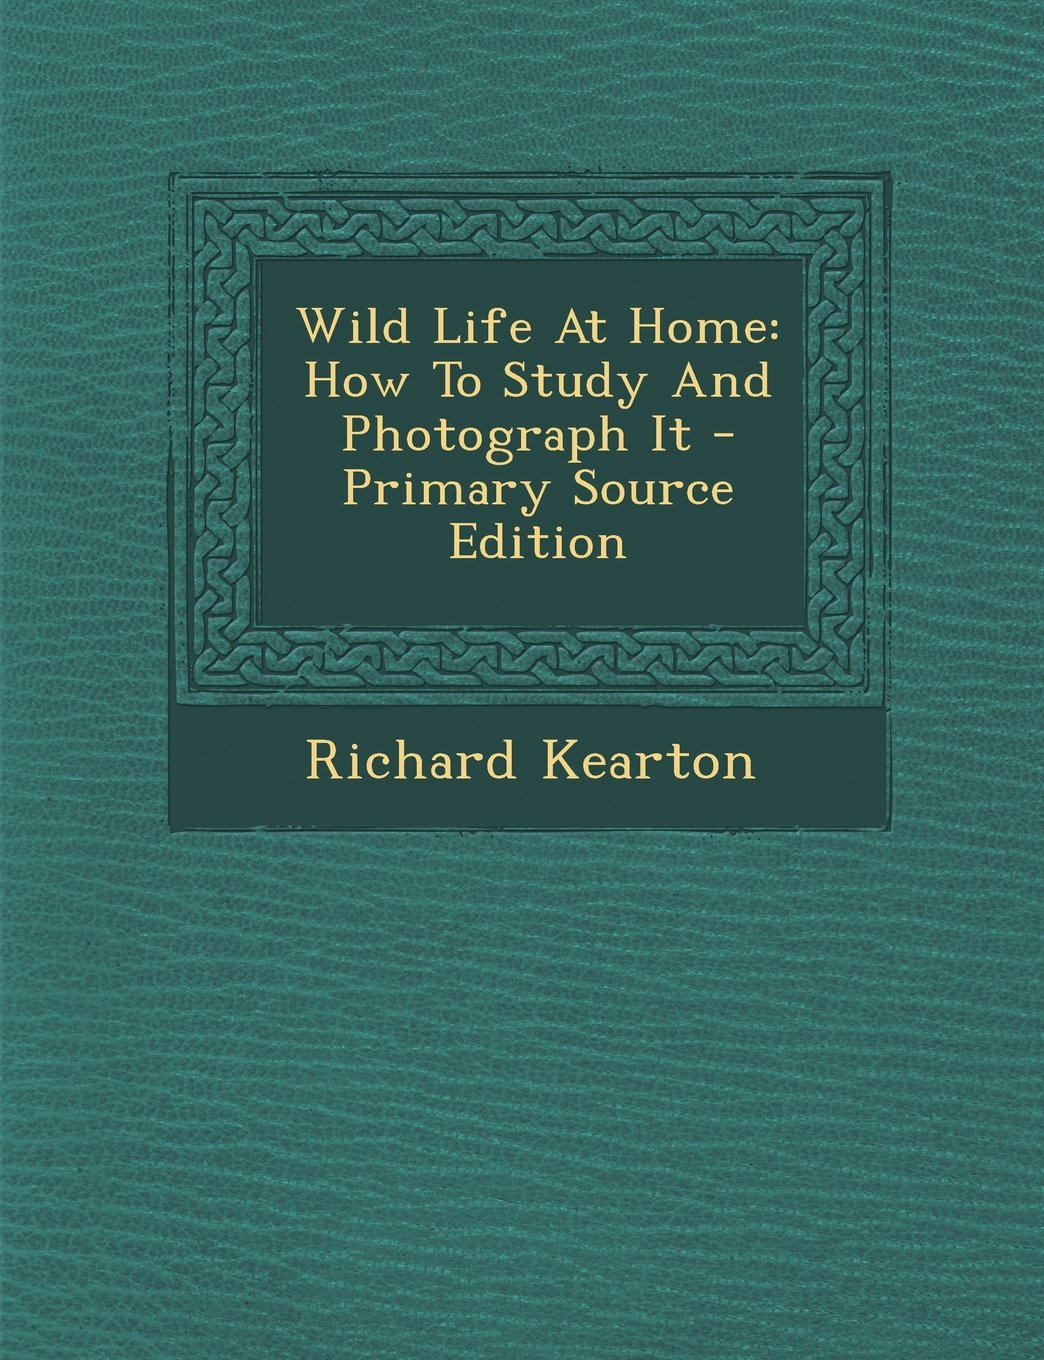 Wild Life At Home: How To Study And Photograph It - Primary Source Edition